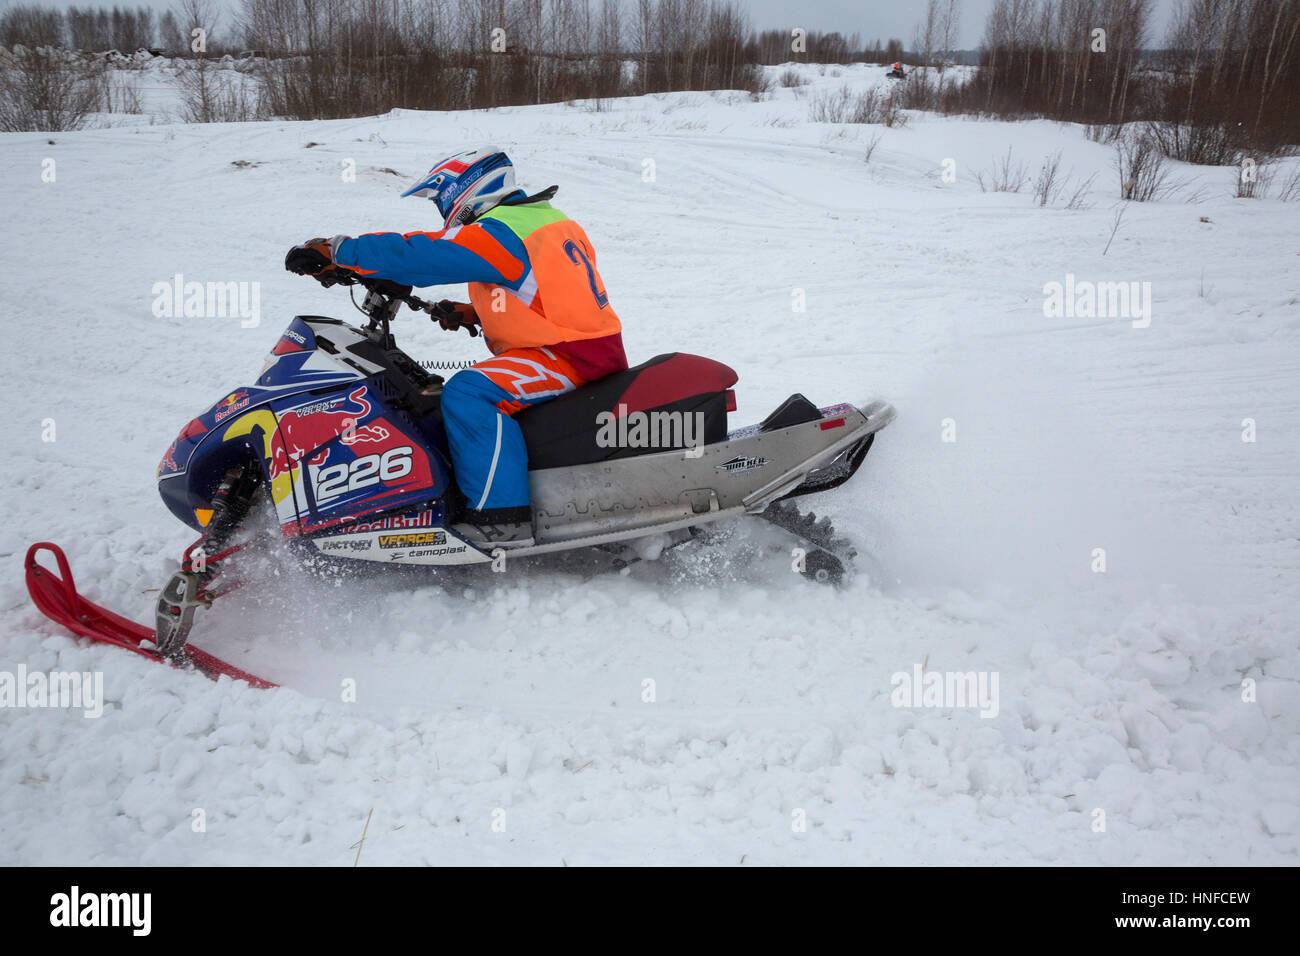 A sportsman takes part in the Volga Cup on snowmobile sport during the Winter Sports Festival in Uglich, Russia - Stock Image